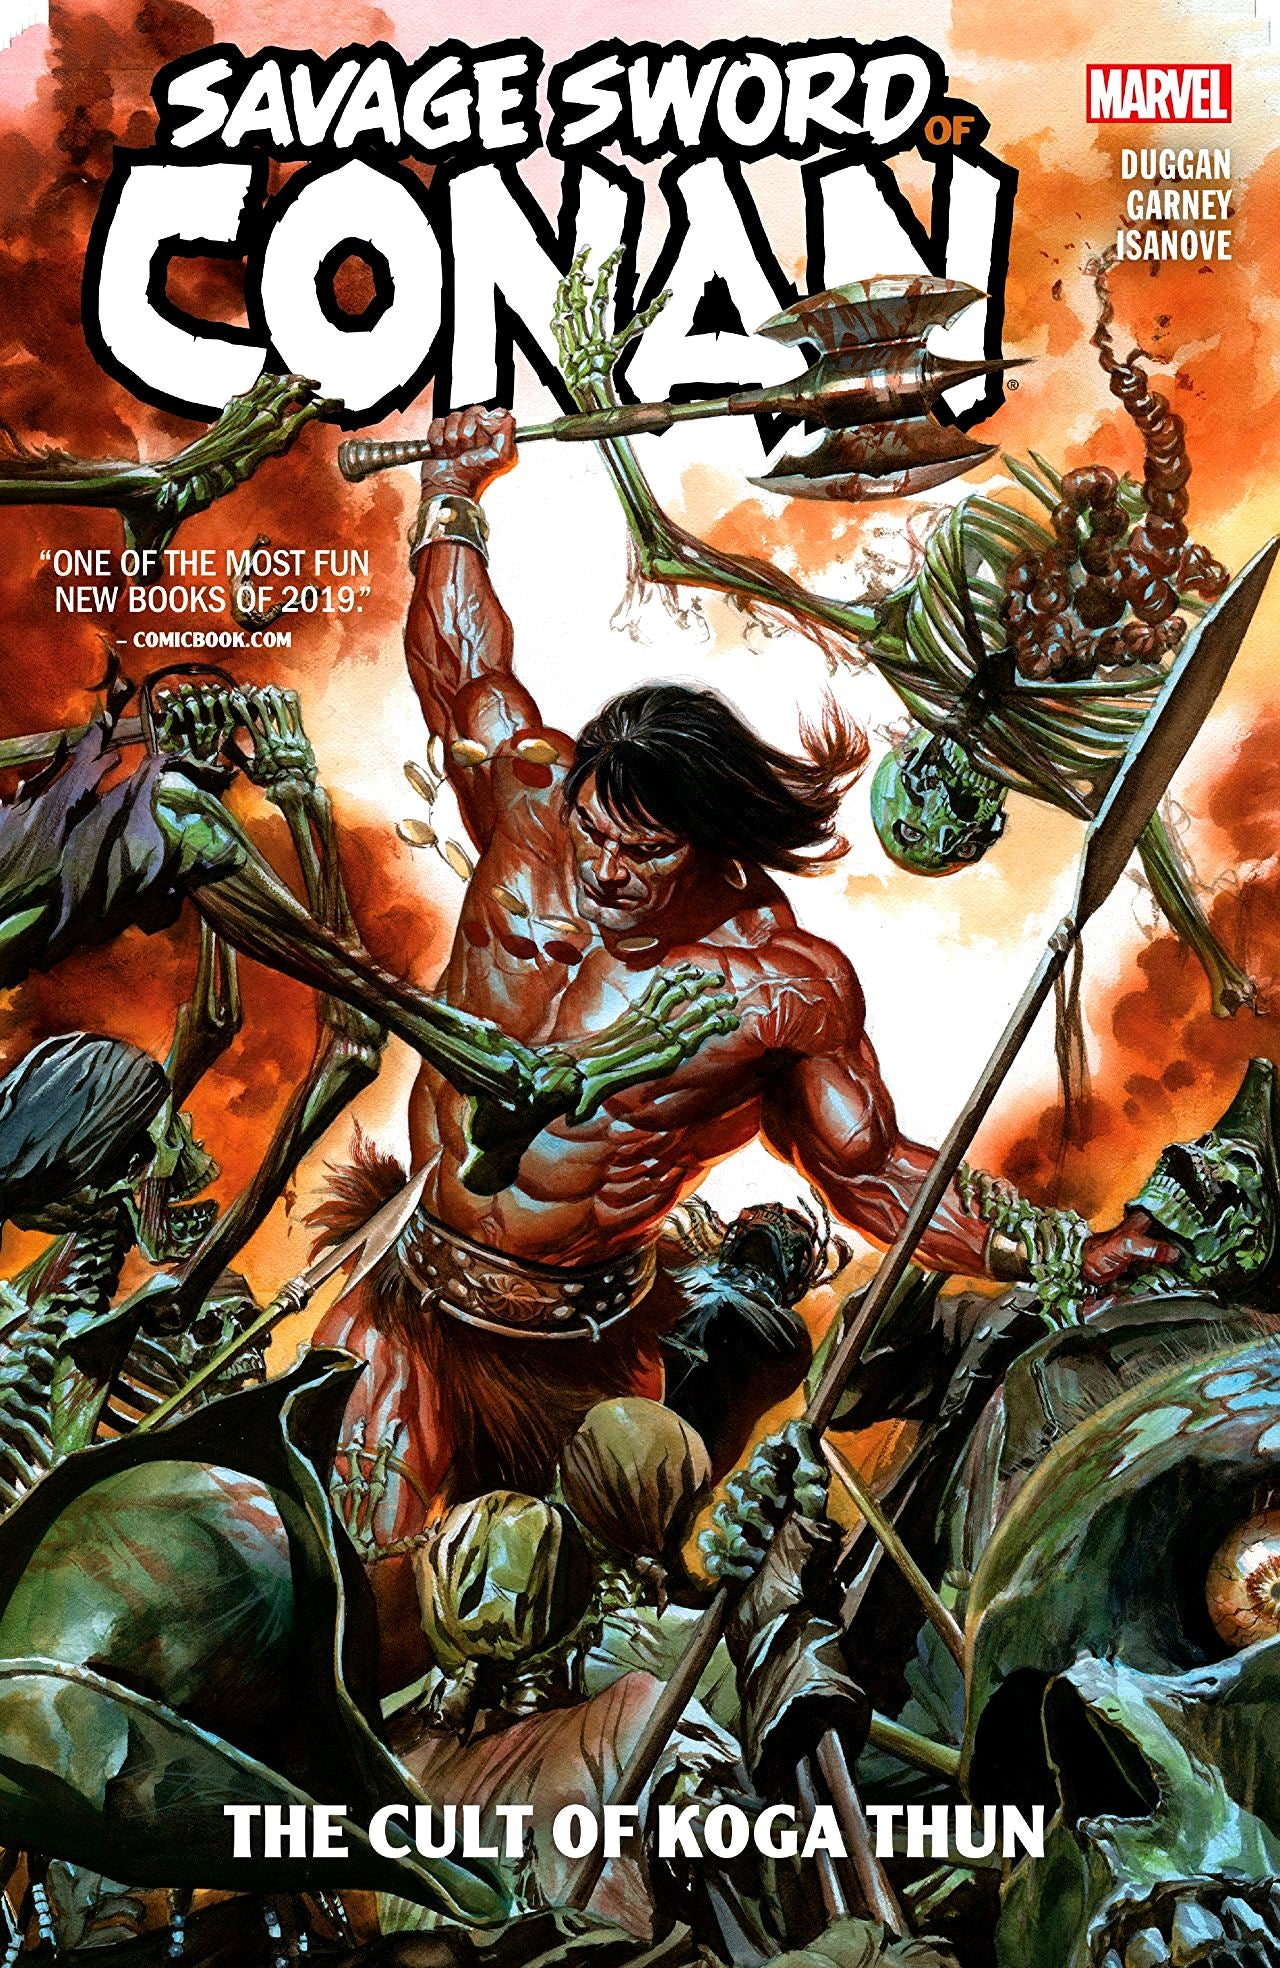 Savage Sword of Conan (2019) Volume 1: The Cult of Koga Thun